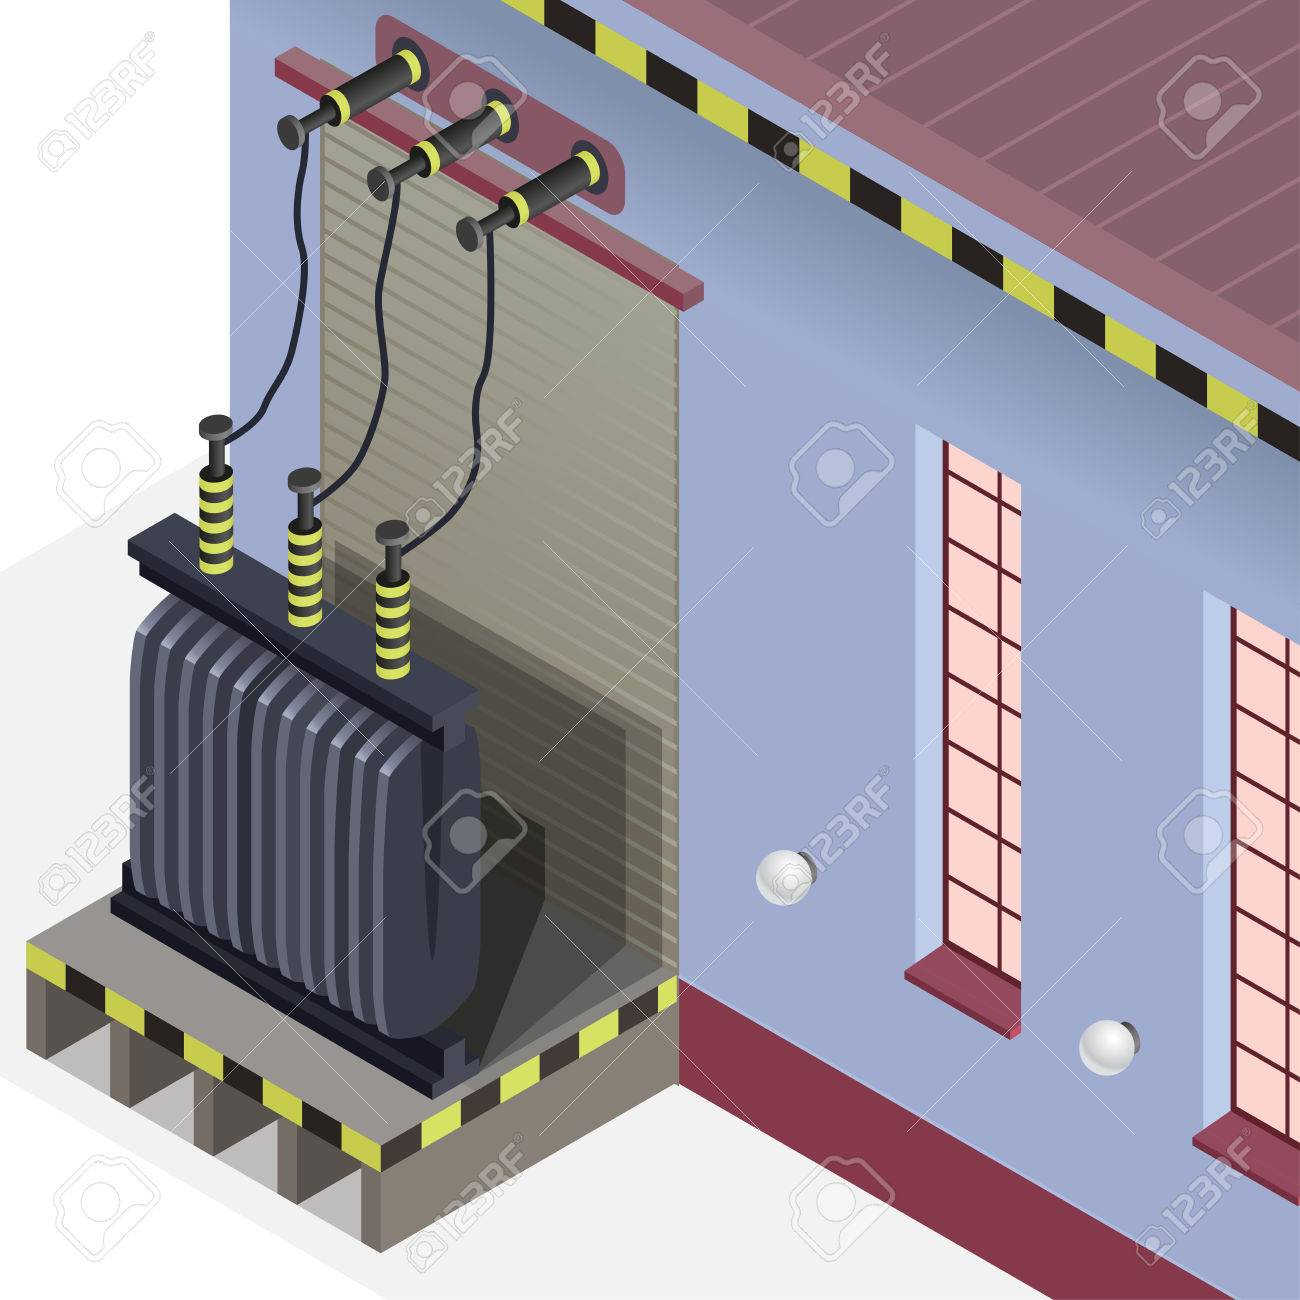 Electric Transformer Isometric Building Info Graphic High Voltage Wiring Diagram Power Station Old Plant Architecture